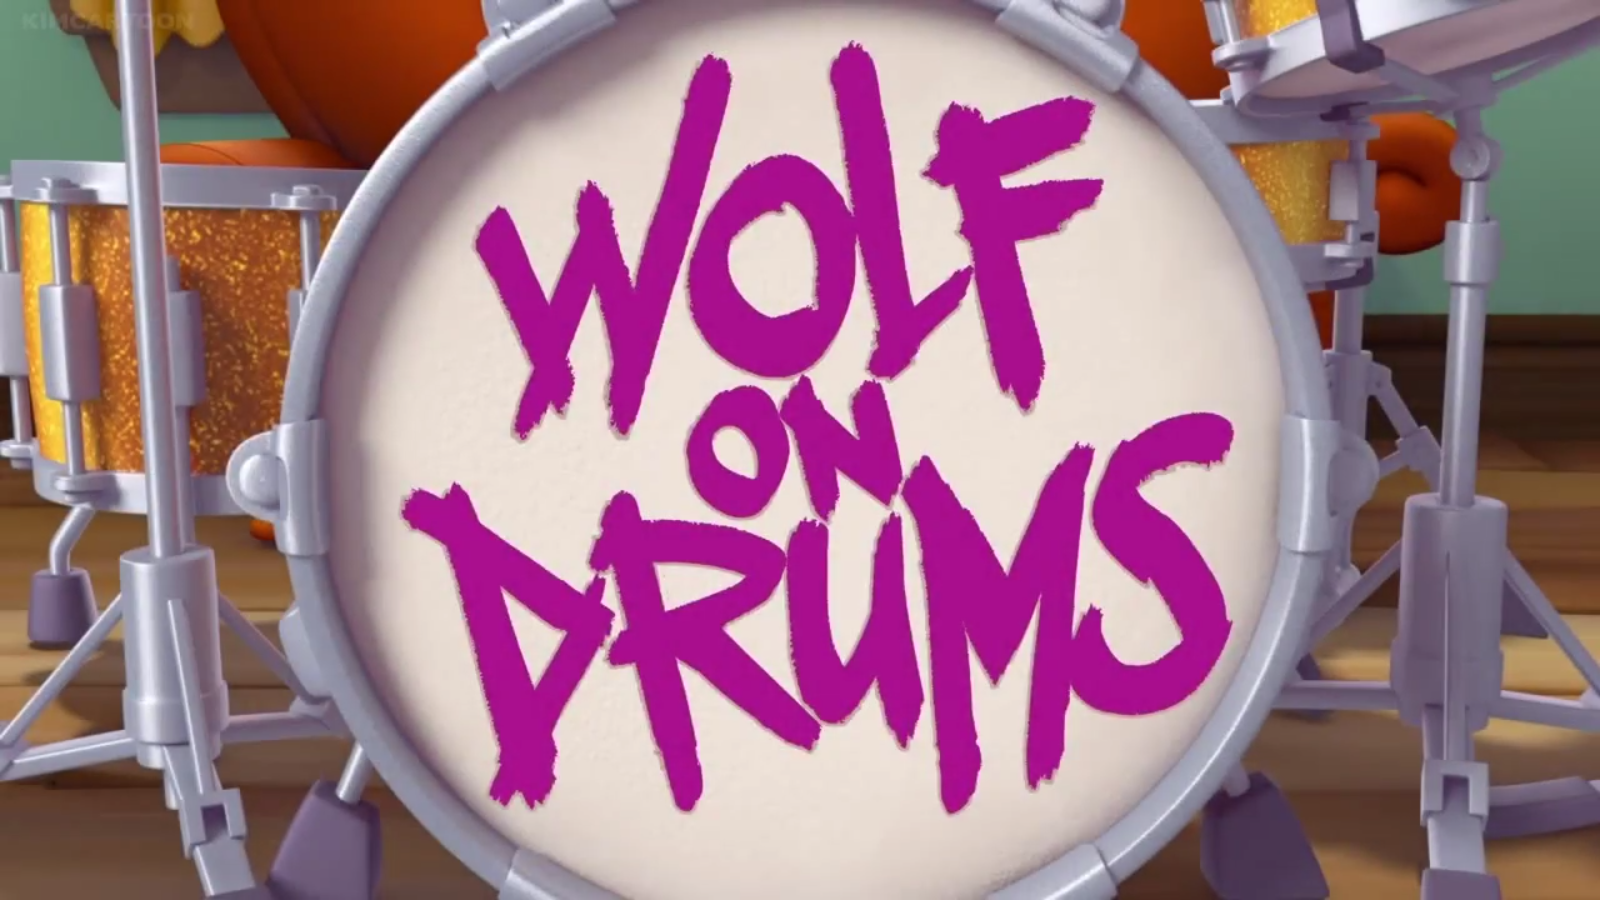 Wolf on Drums